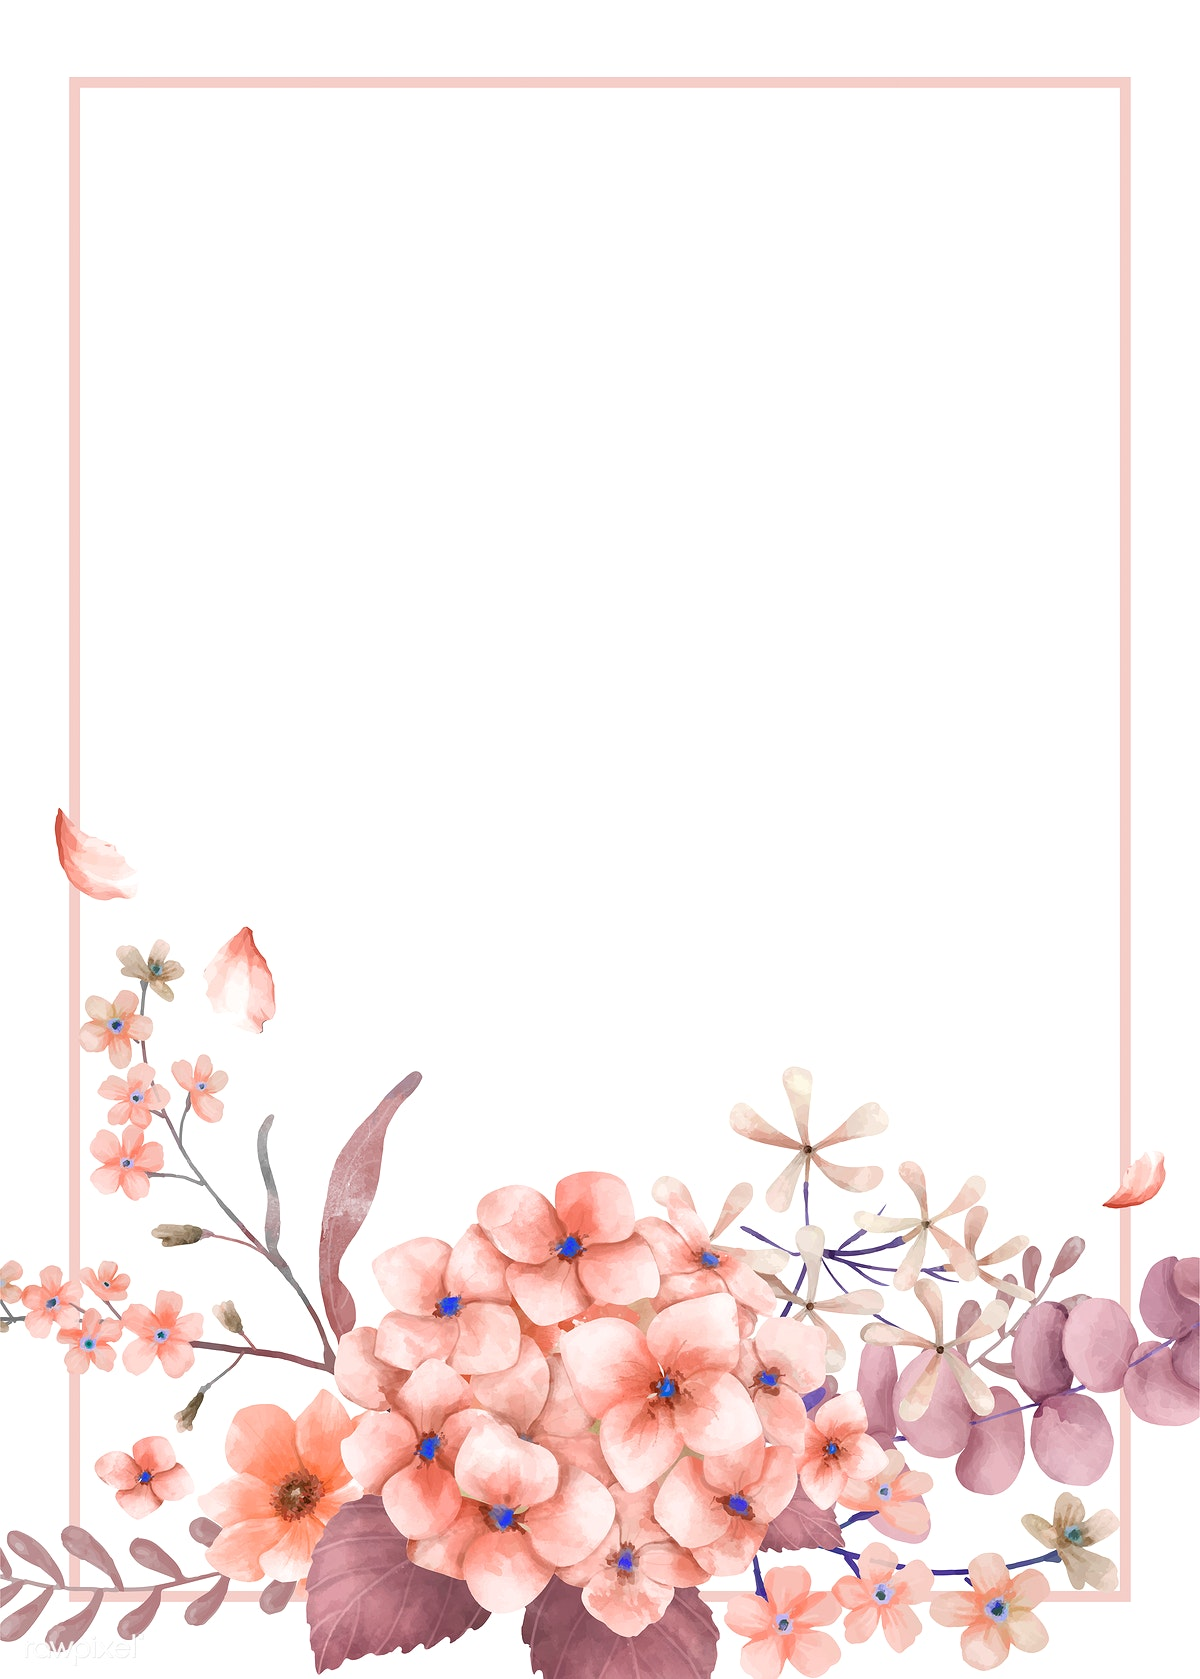 Greetings Card With Pink And Floral Theme Royalty Free